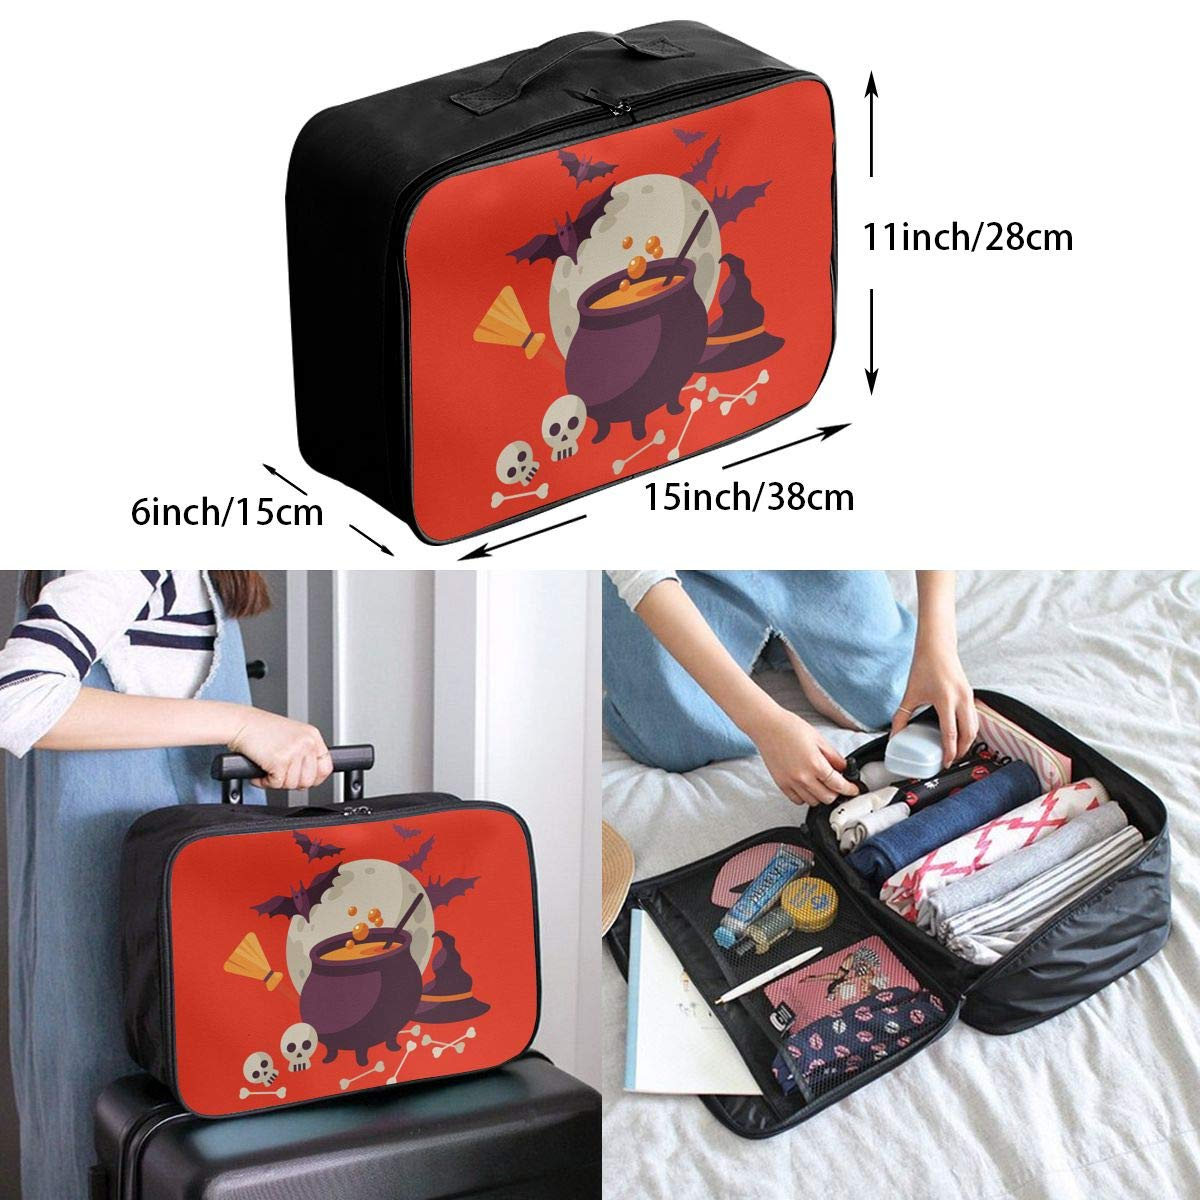 Travel Luggage Duffle Bag Lightweight Portable Handbag Halloween Large Capacity Waterproof Foldable Storage Tote